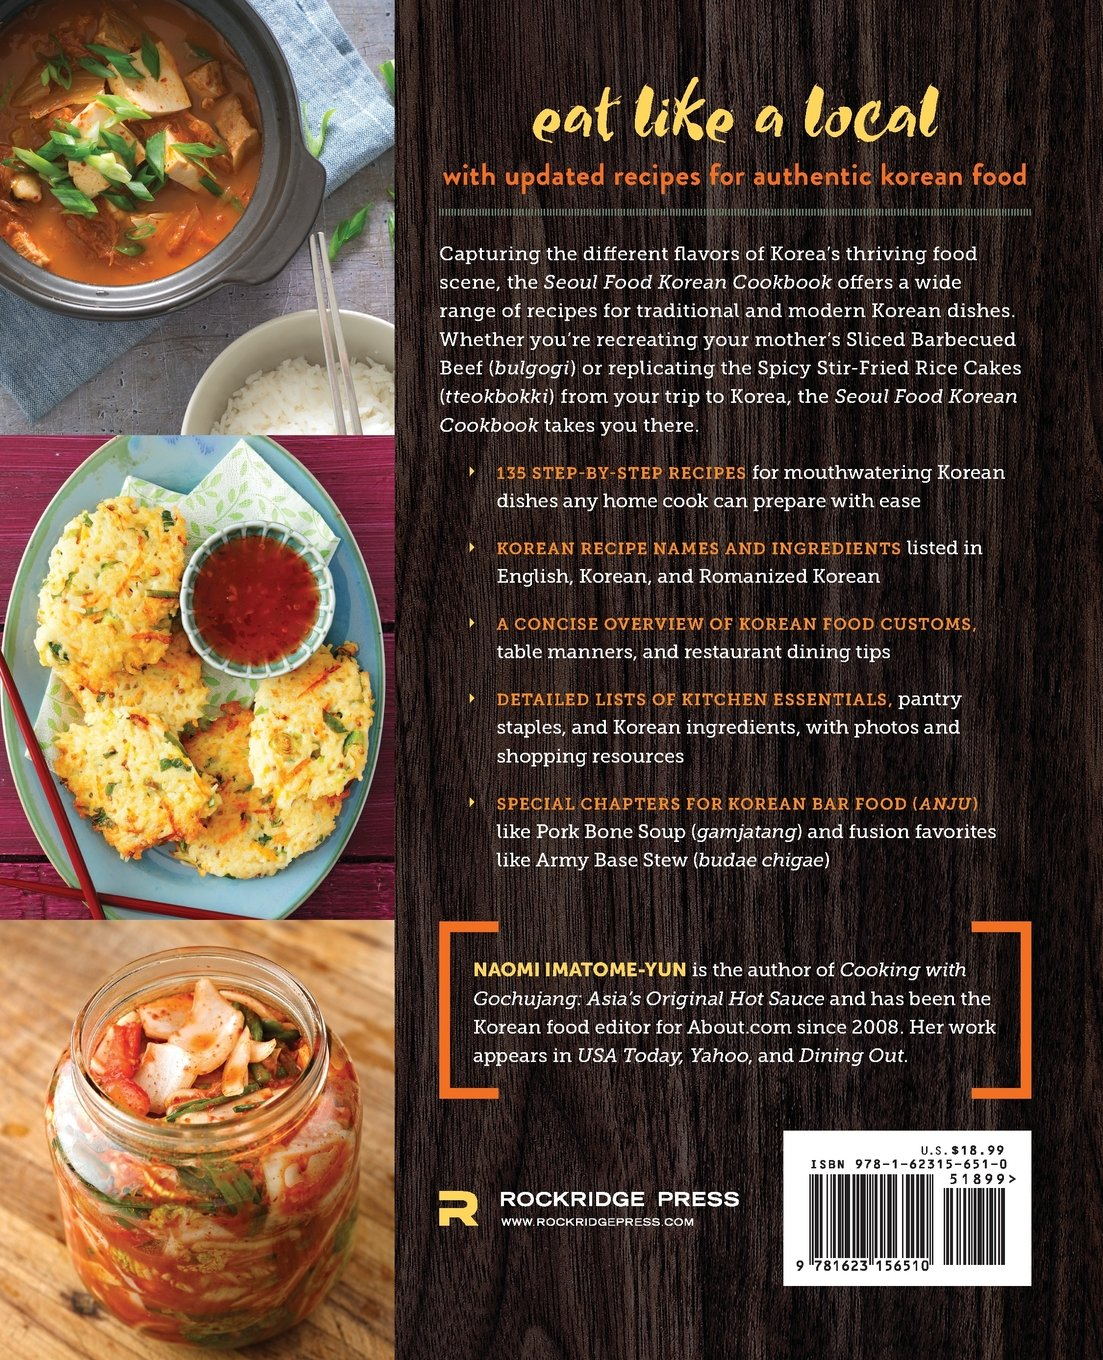 Seoul food korean cookbook korean cooking from kimchi and bibimbap seoul food korean cookbook korean cooking from kimchi and bibimbap to fried chicken and bingsoo naomi imatome yun 9781623156510 amazon books forumfinder Image collections